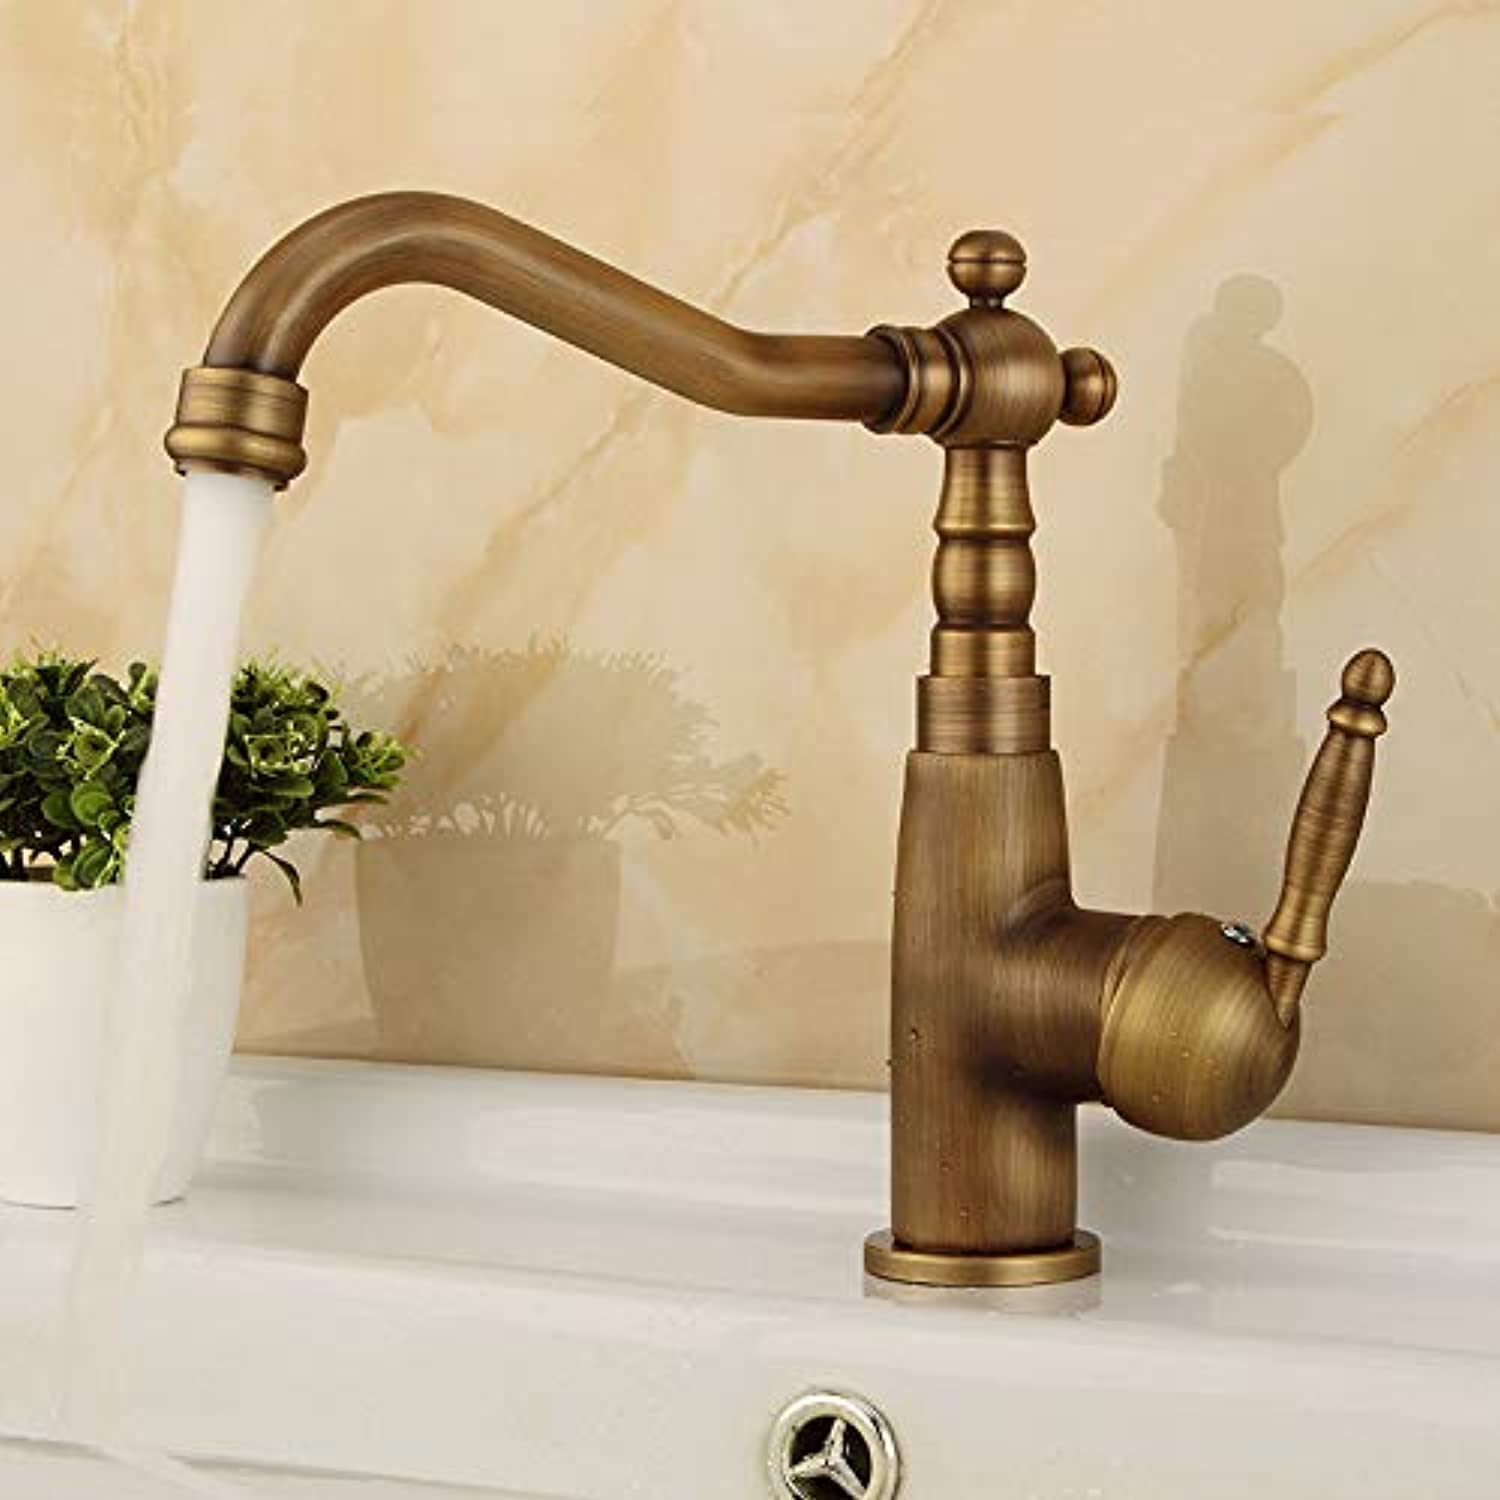 redOOY Faucet Taps Basin Faucet Copper Antique Hot And Cold Faucet Heightening Single Hole Above Counter Basin Faucet Retro Faucet